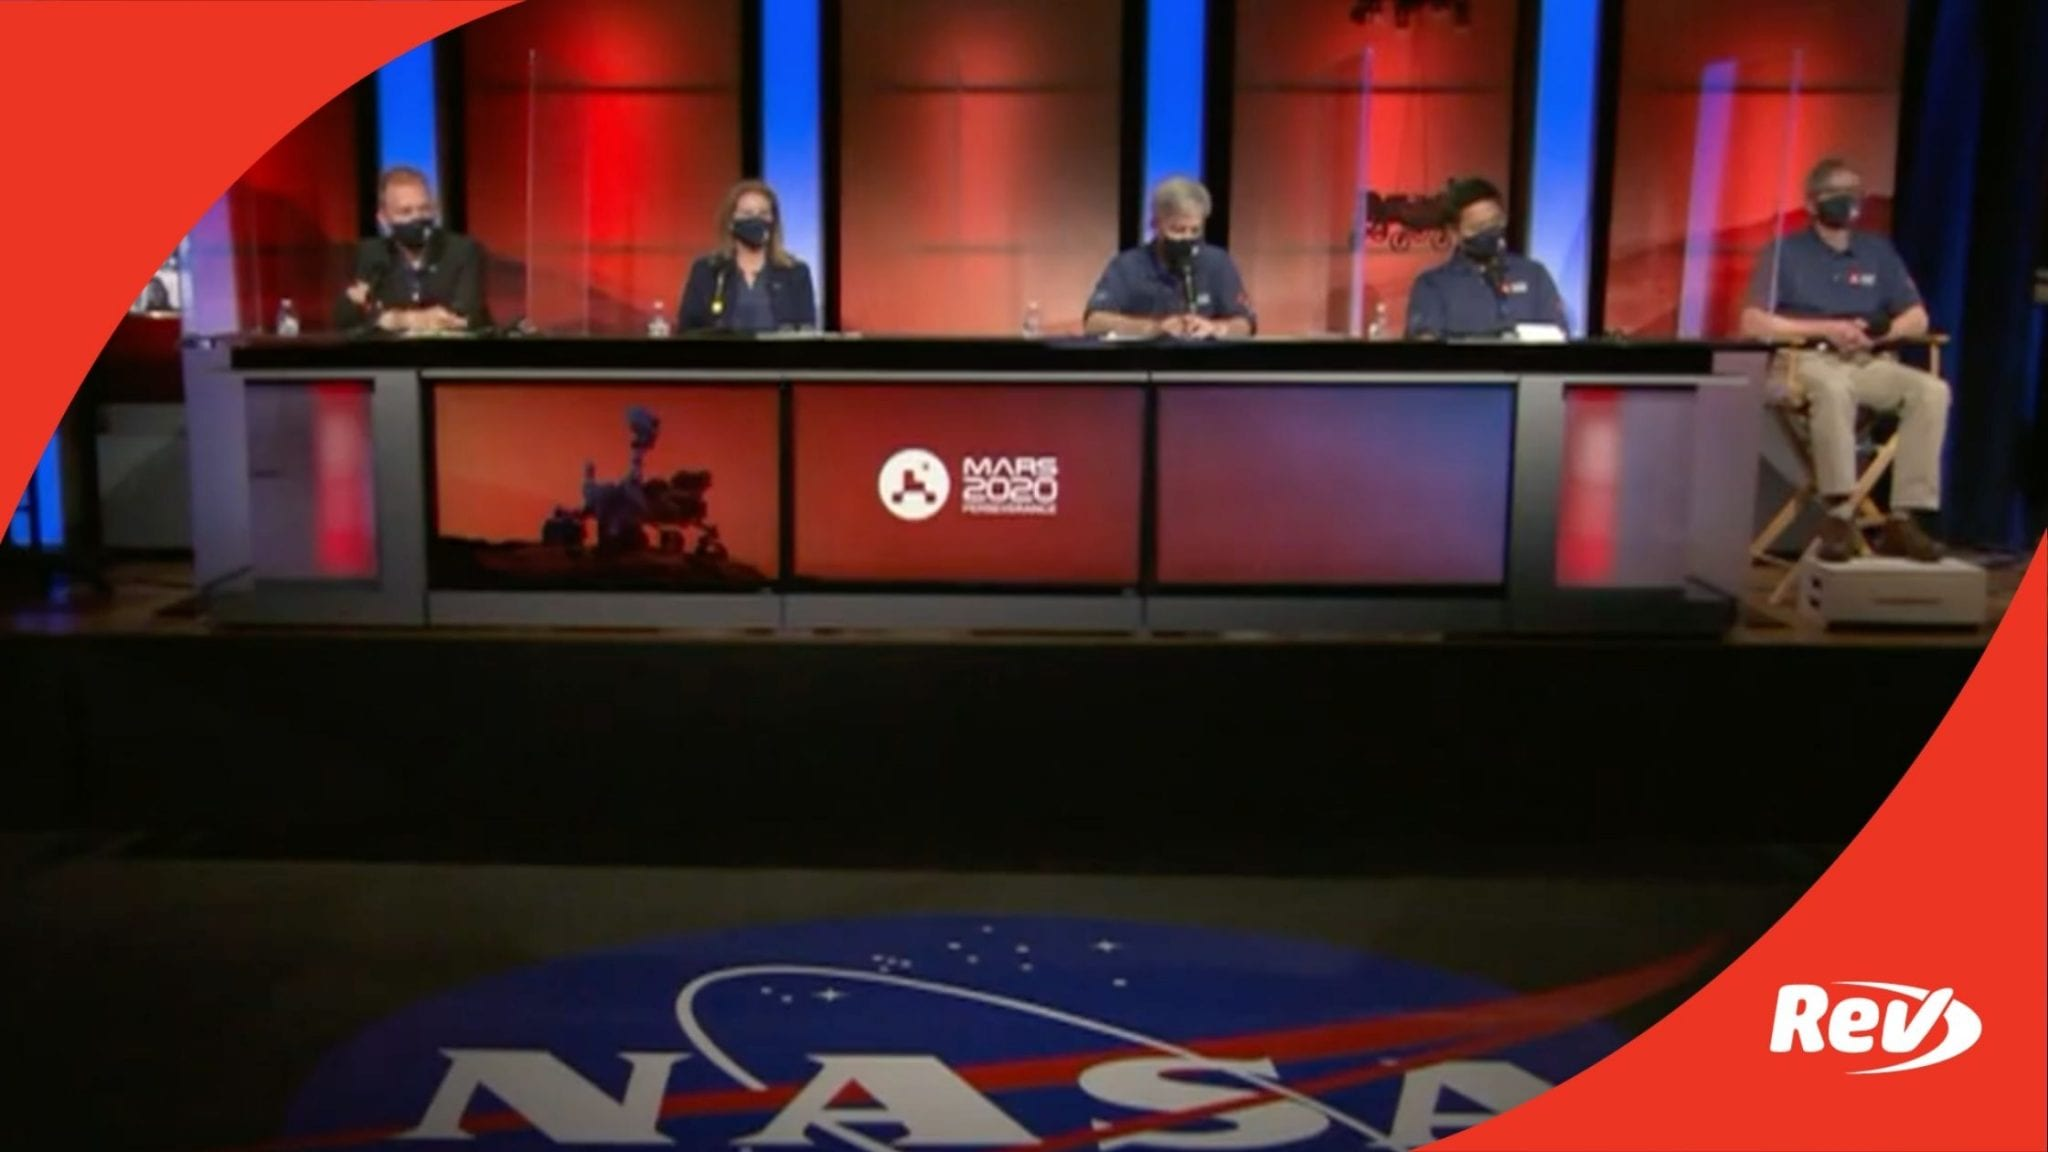 NASA Press Conference Transcript February 18: After Perseverance Rover Lands on Mars